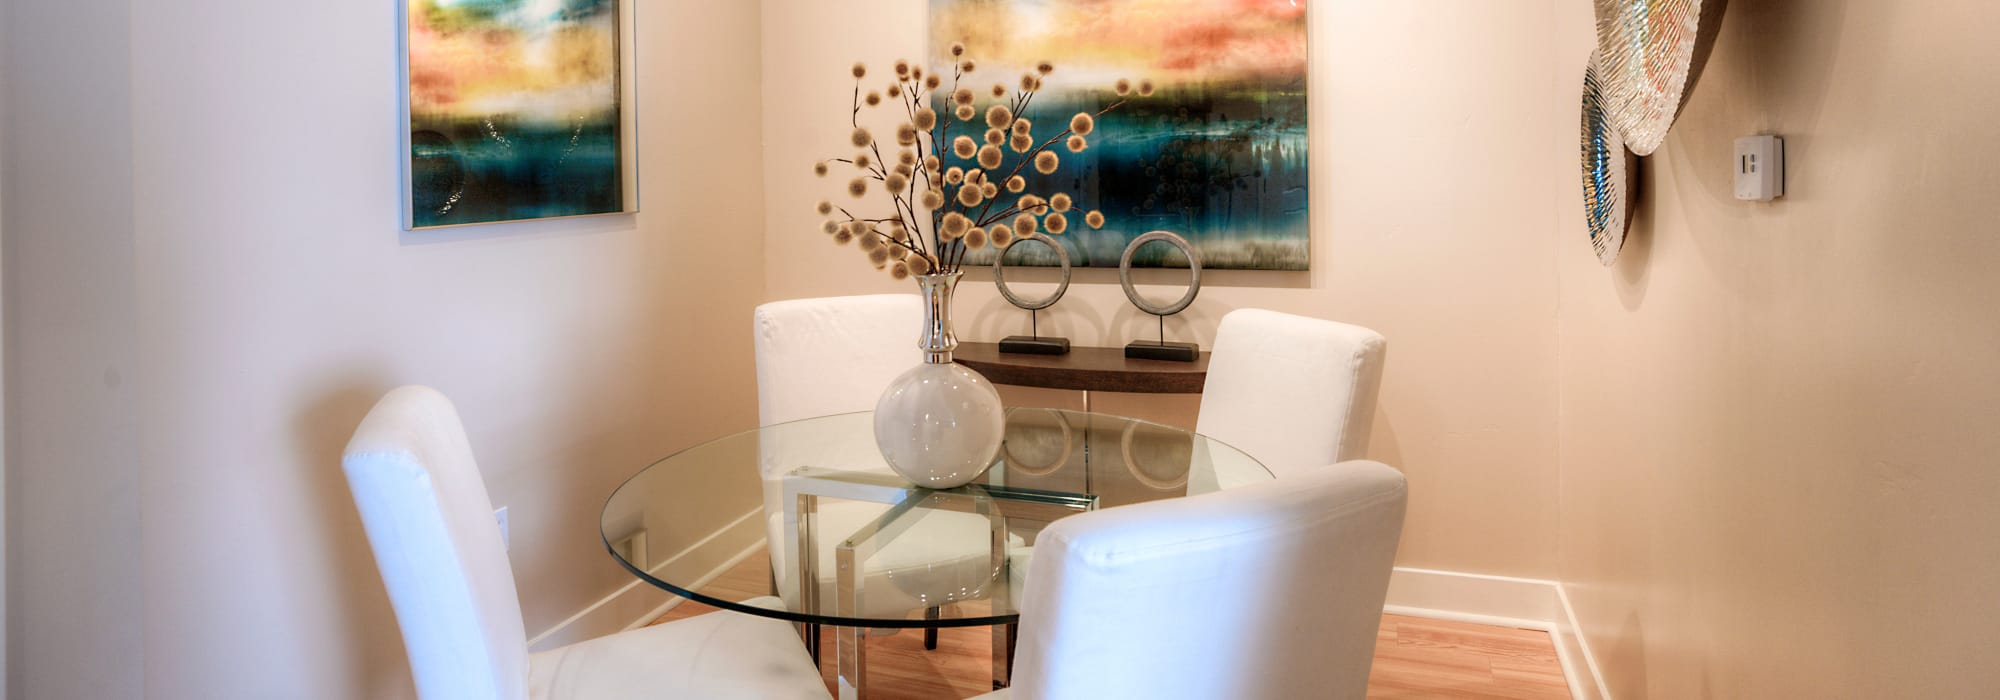 Dining nook in model apartment home at Level at Sixteenth in Phoenix, Arizona